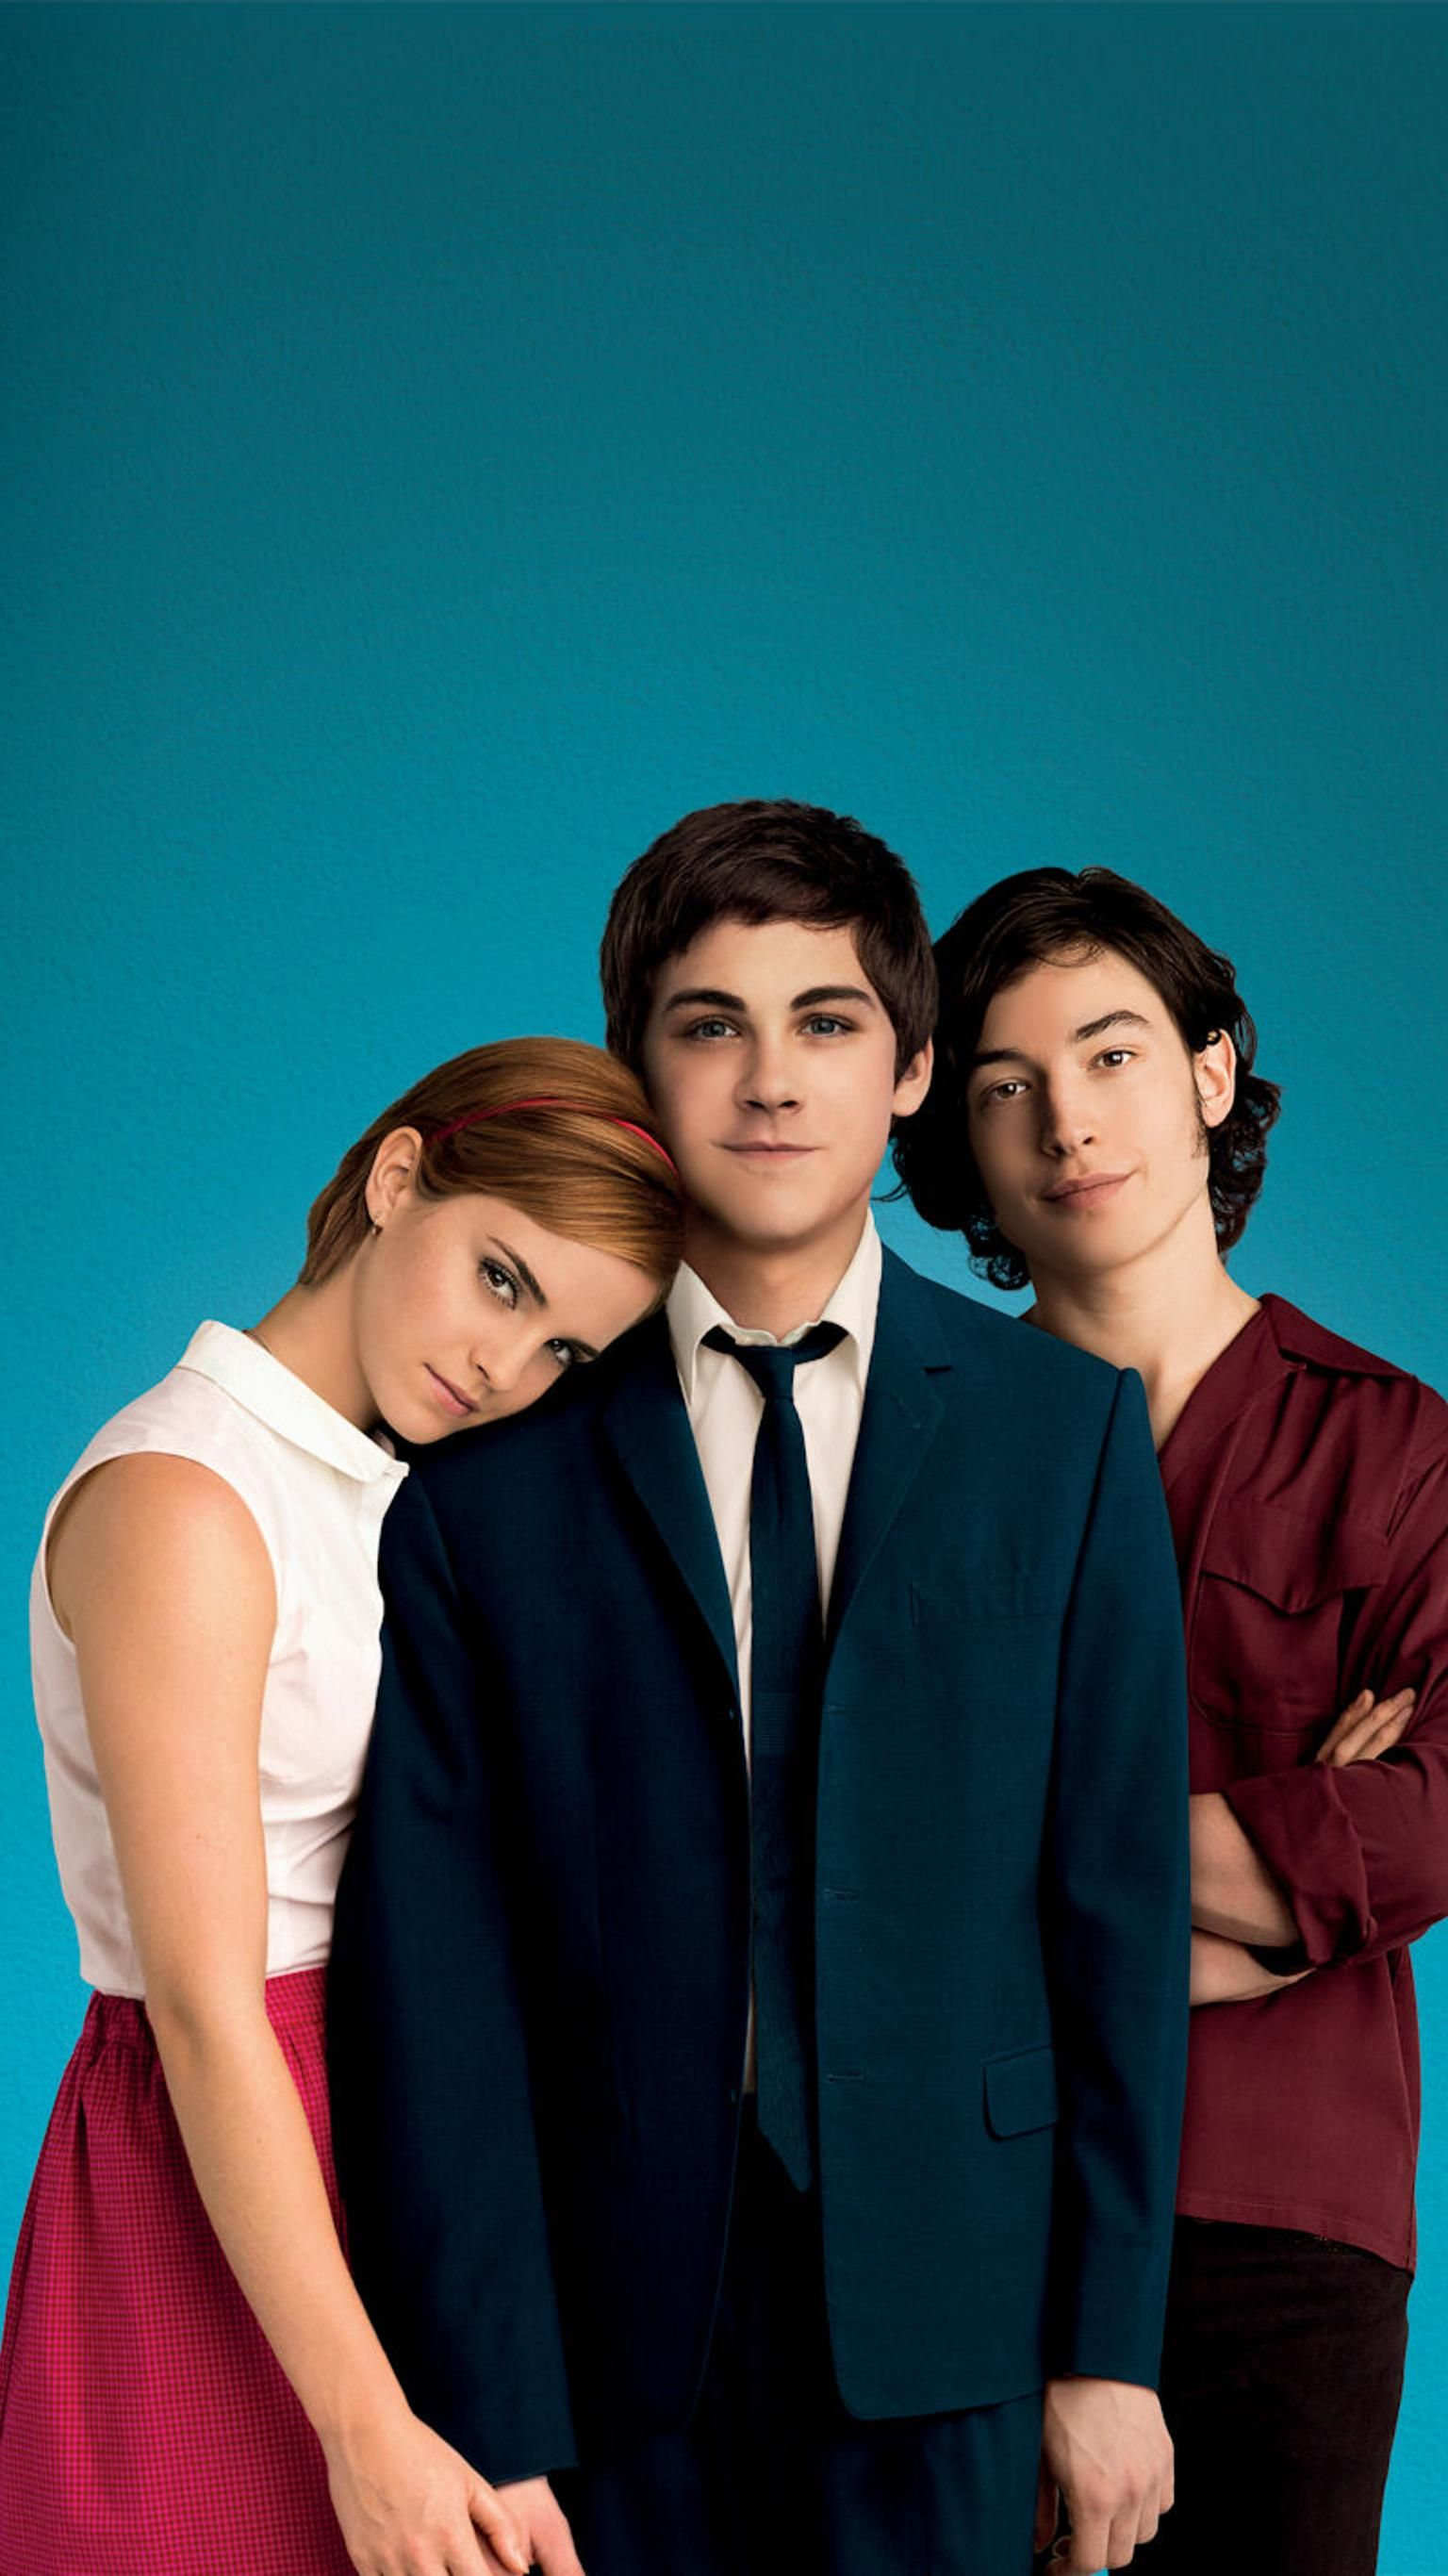 The Perks Of Being A Wallflower 2012 Phone Wallpaper As